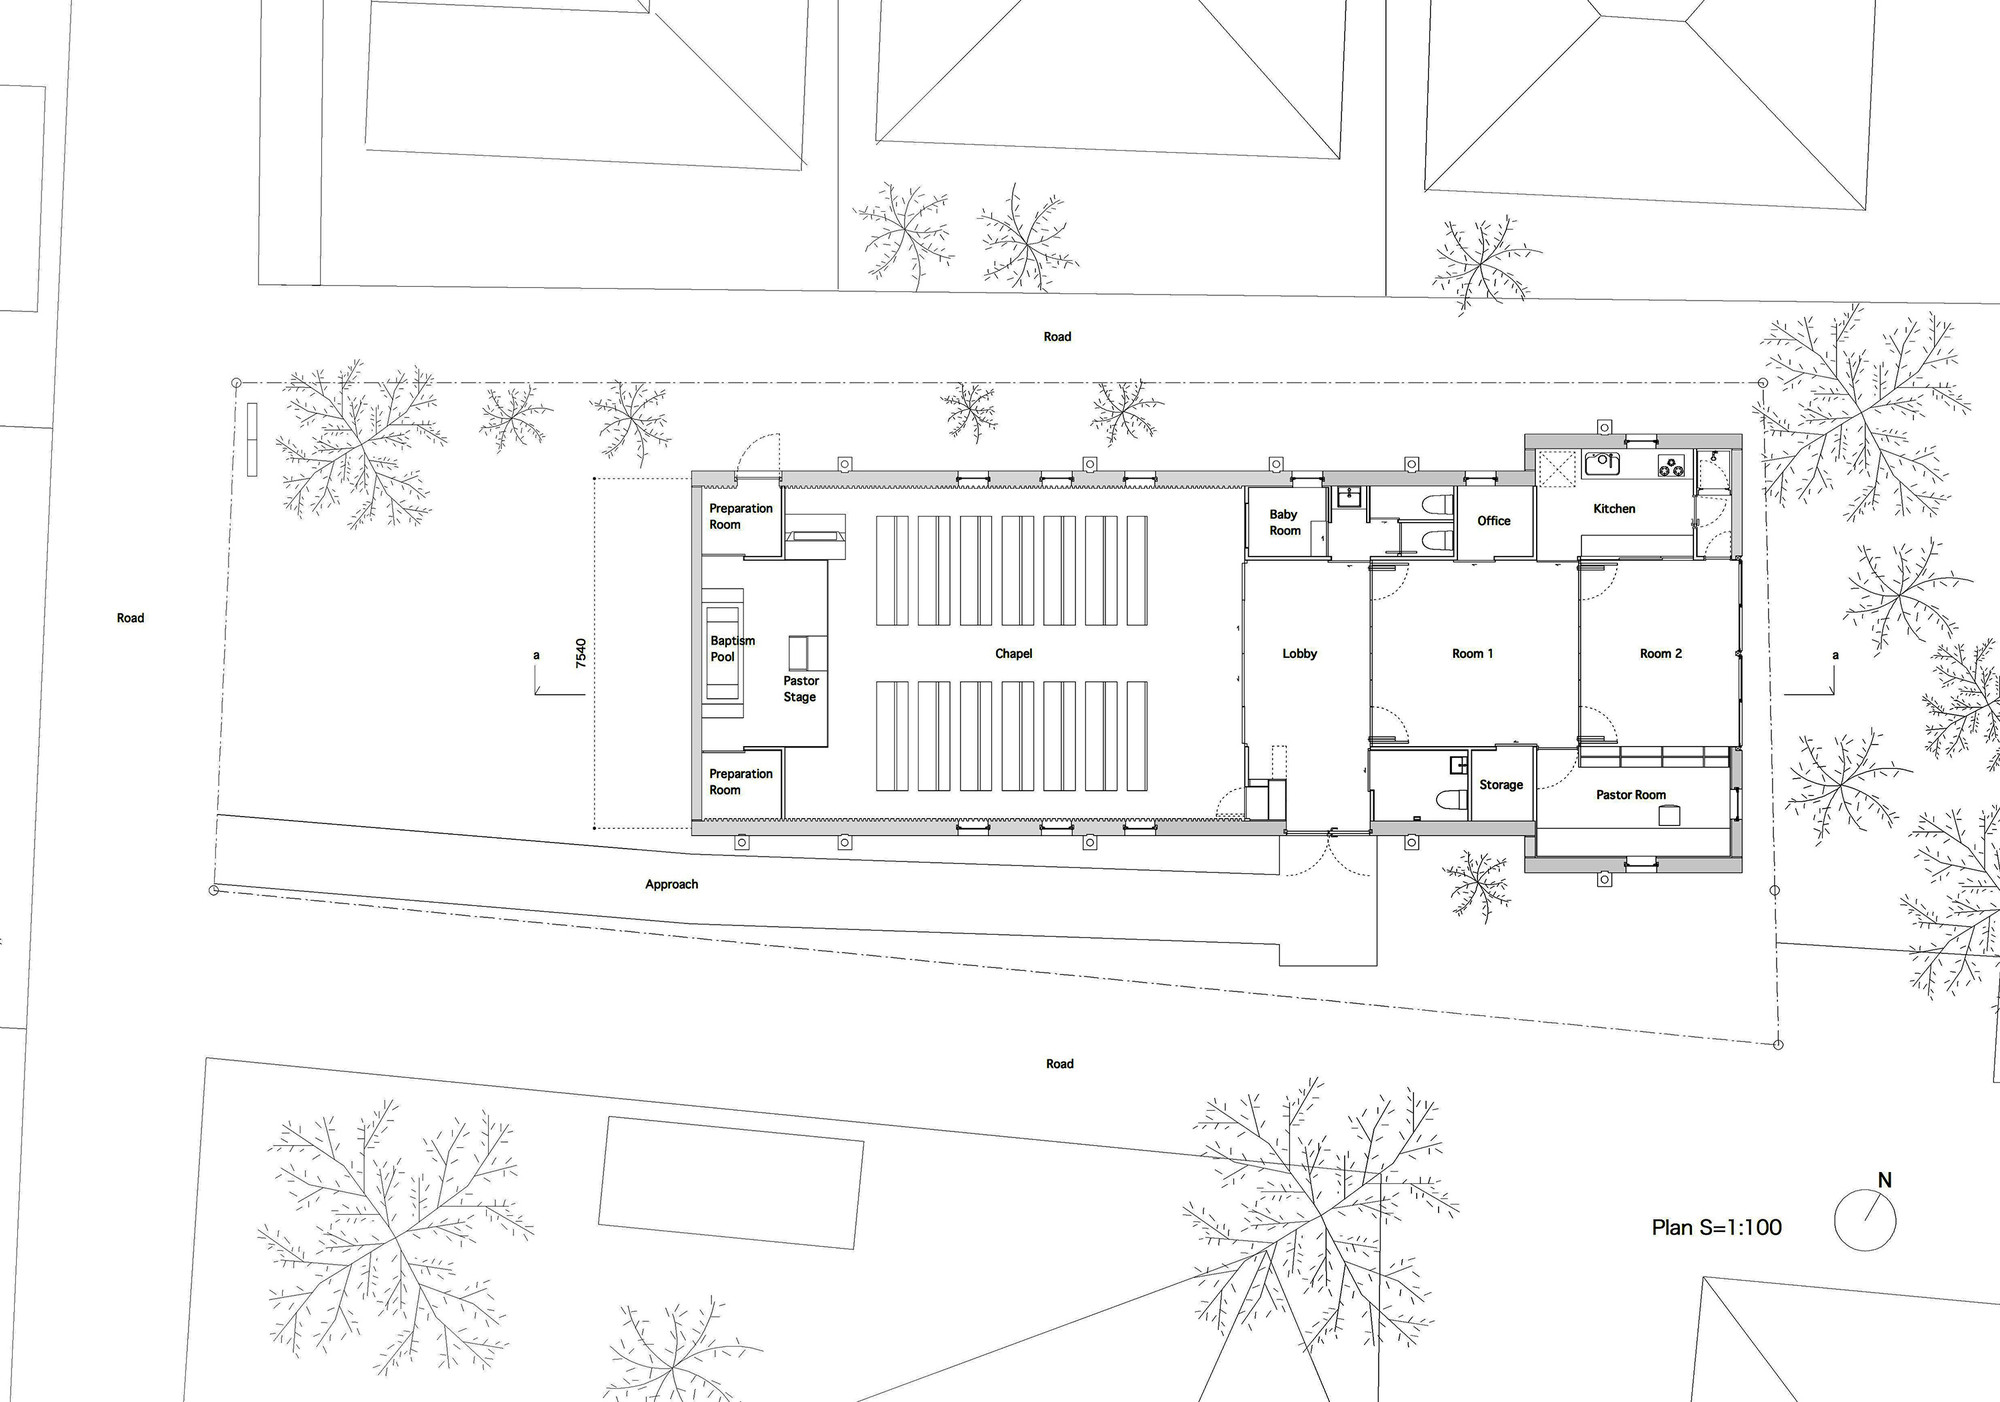 shonan christ church takeshi hosaka archdaily floor plan